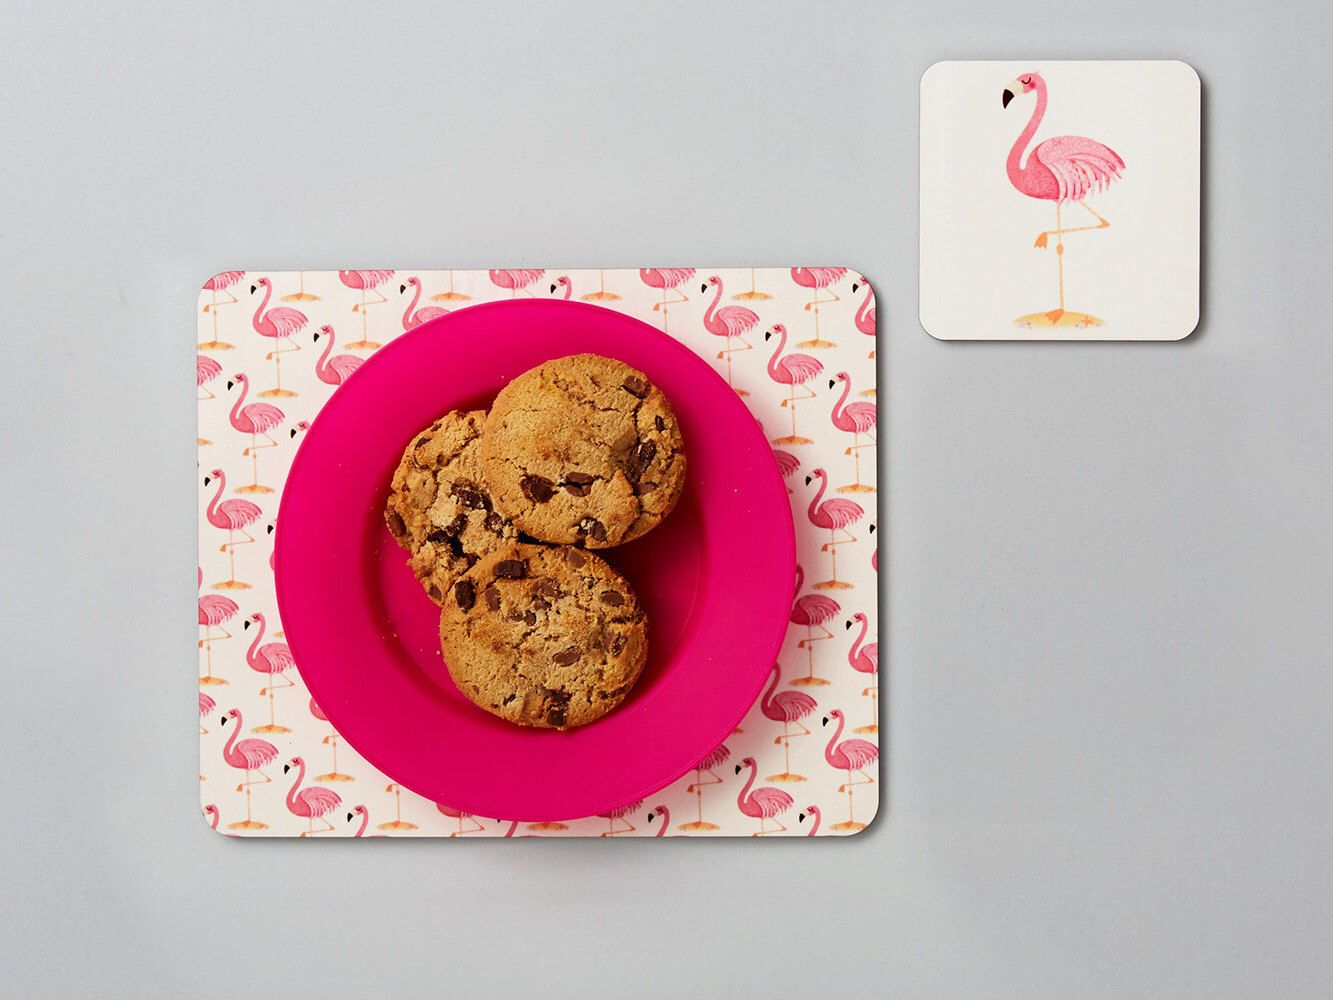 Flamingo placemat and coaster set kids easter gifts flamingo flamingo placemat and coaster set kids easter gifts flamingo gift toddler gift kids gifts gifts under 10 girl gifts negle Gallery